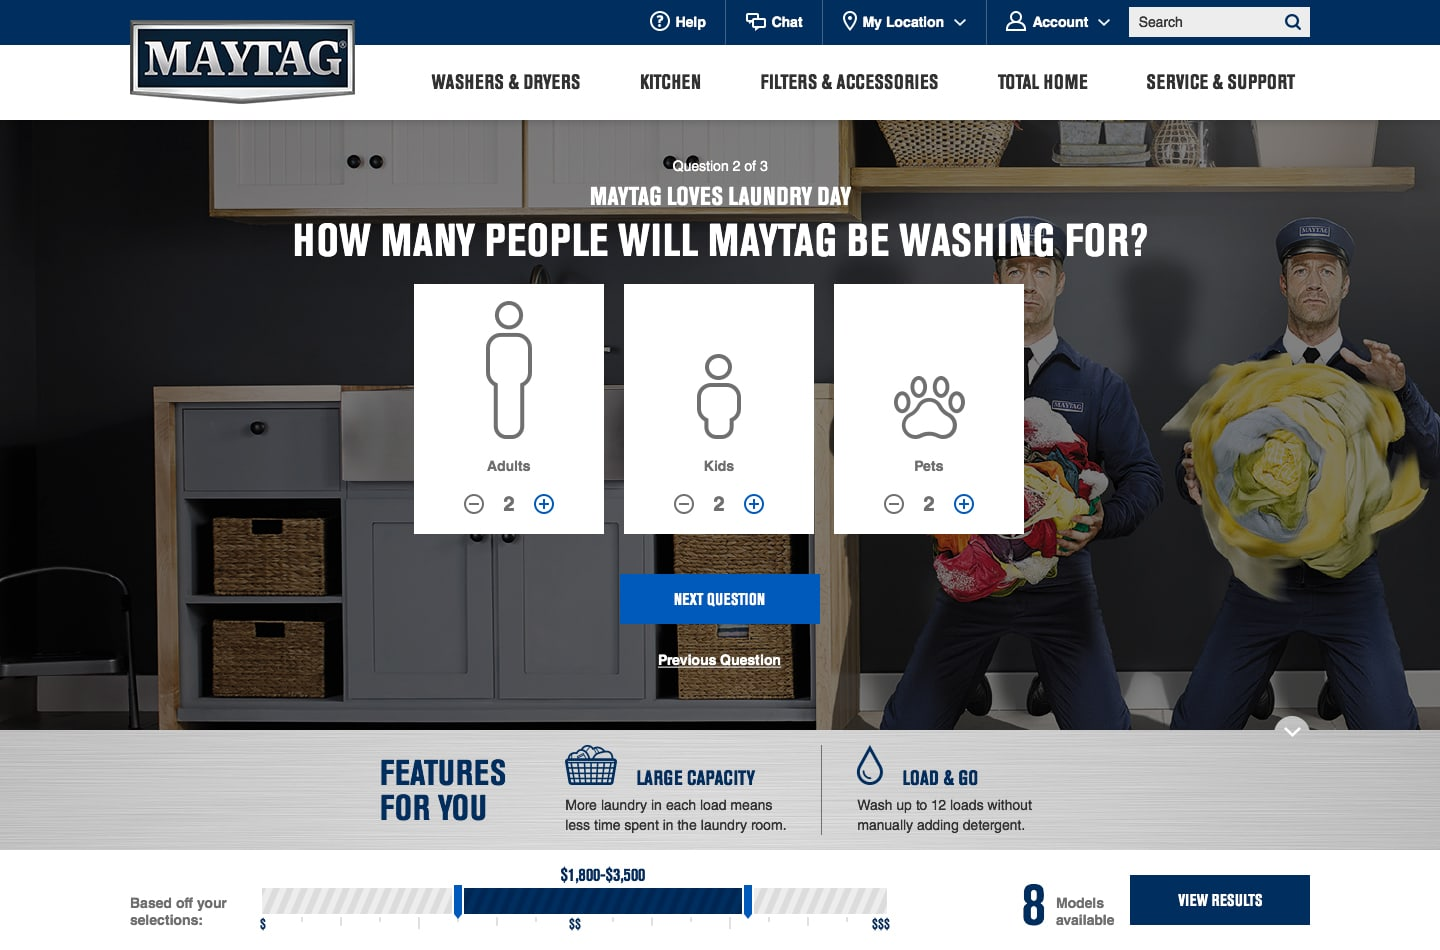 Maytag eCommerce site